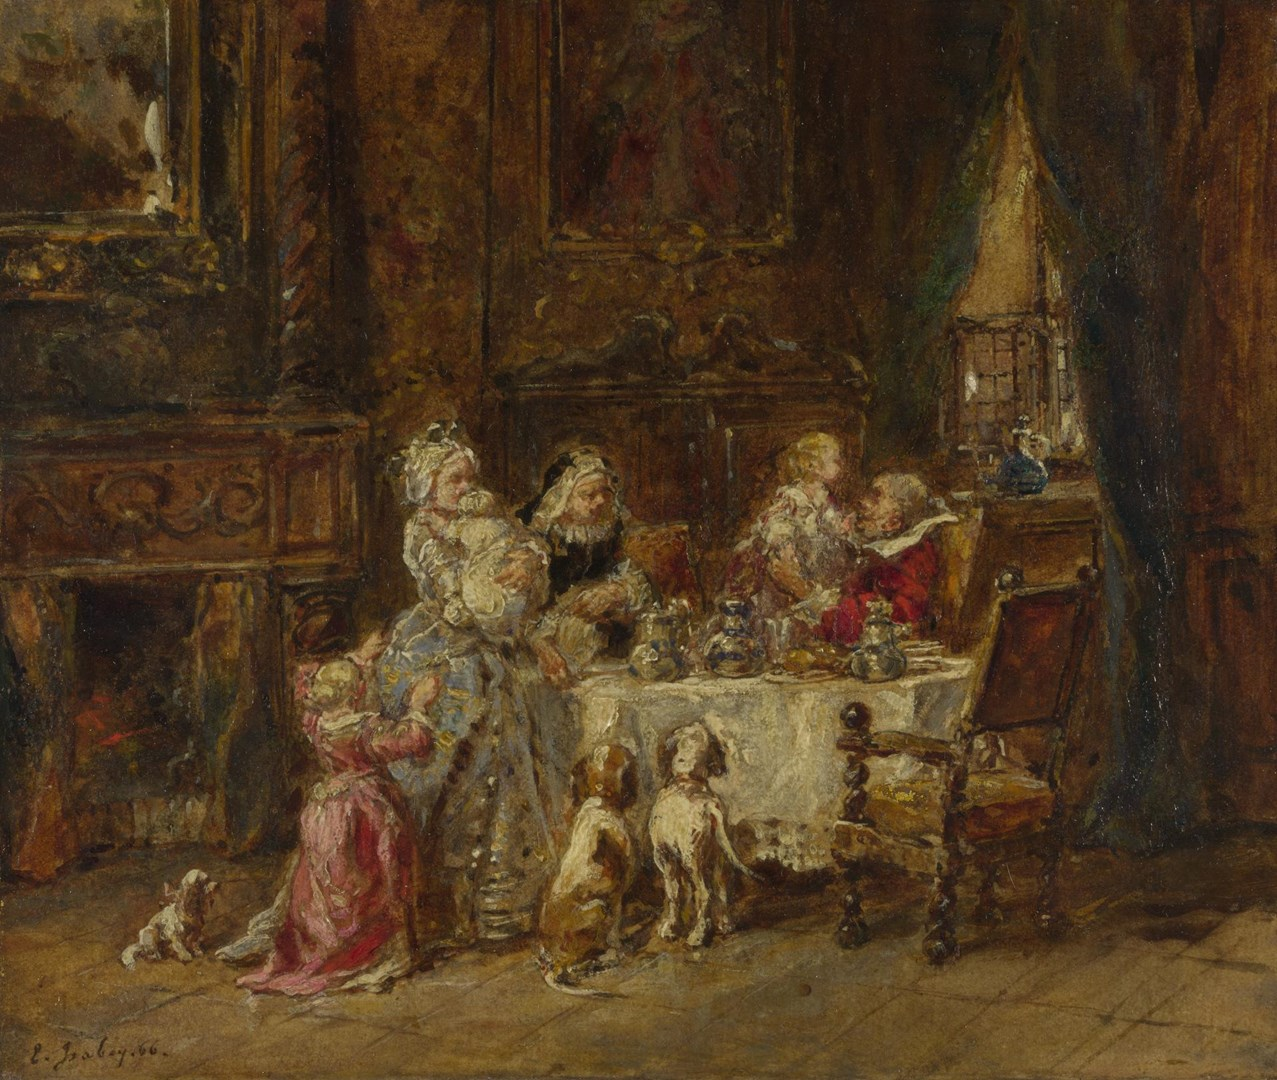 Grandfather's Birthday by Louis-Gabriel-Eugène Isabey